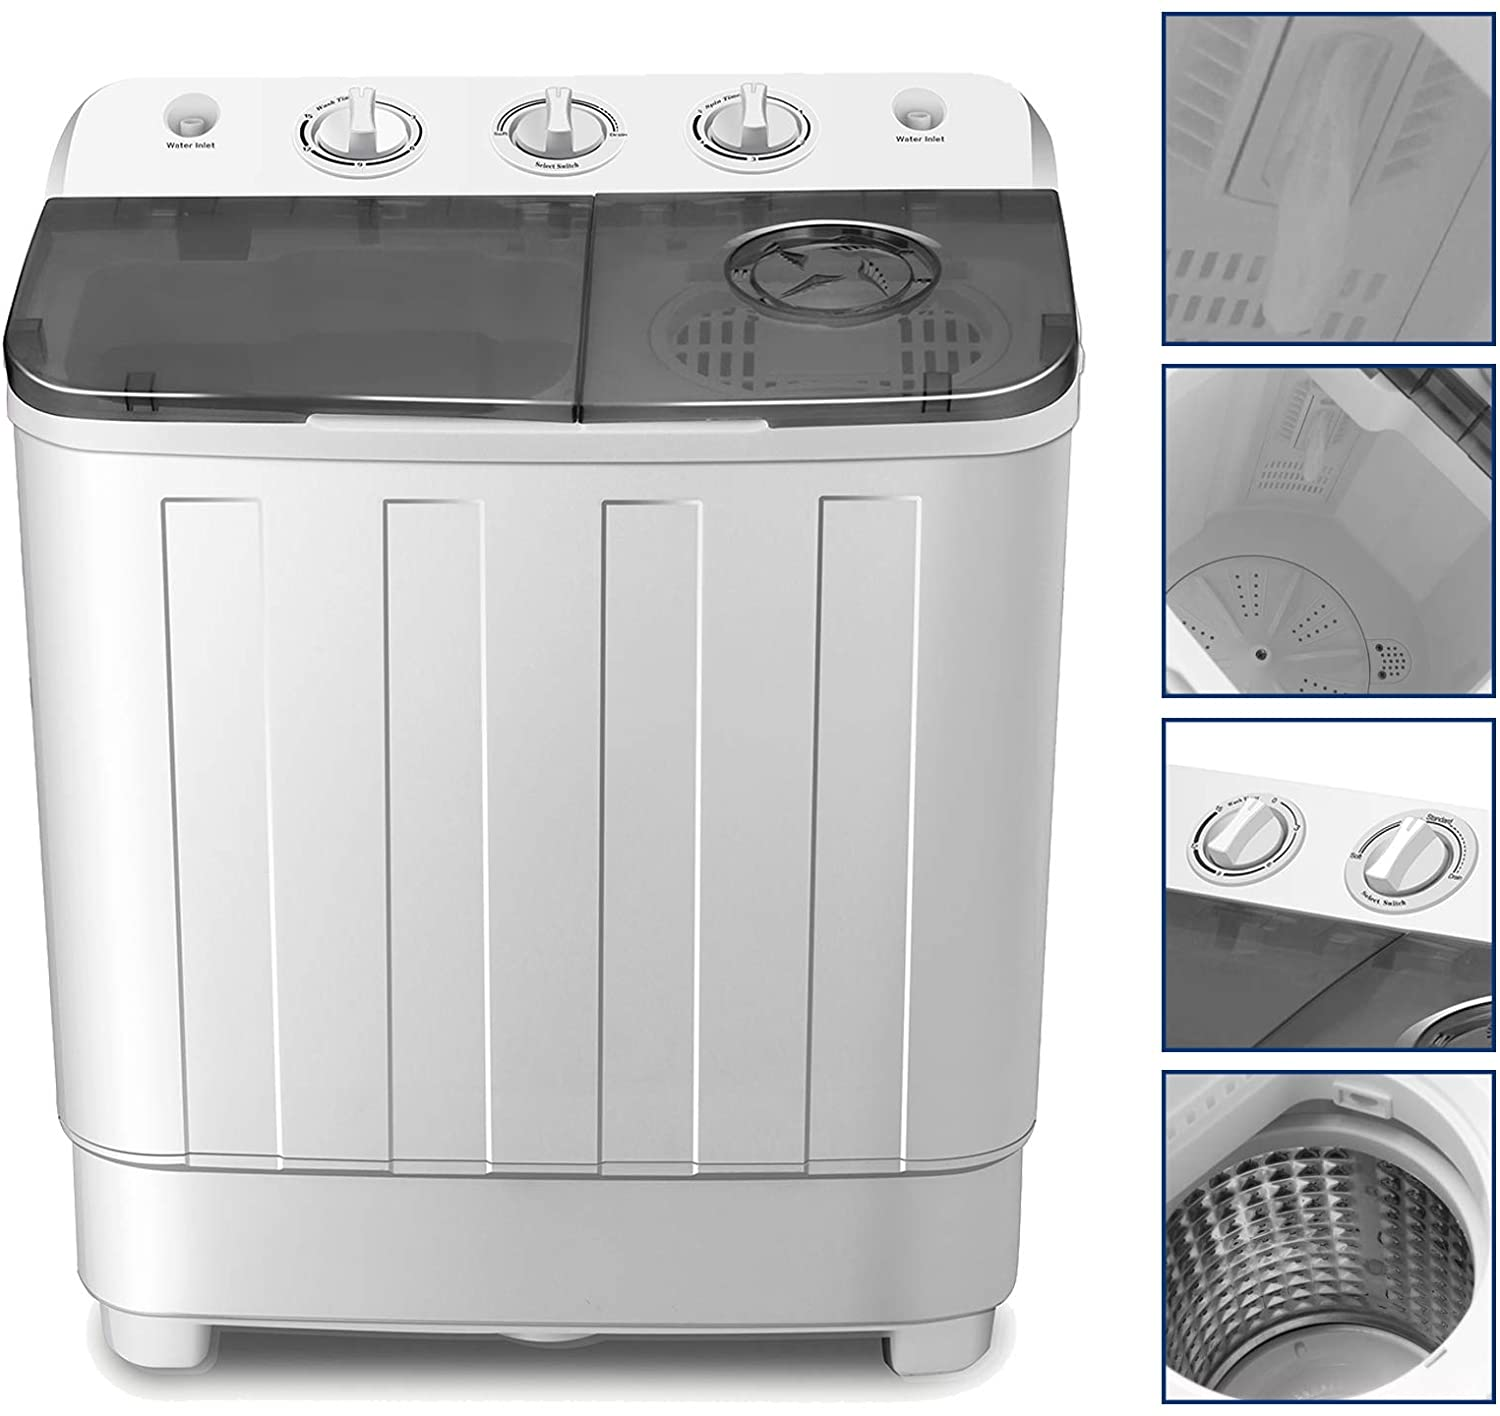 4-EVER mini Washing Machine